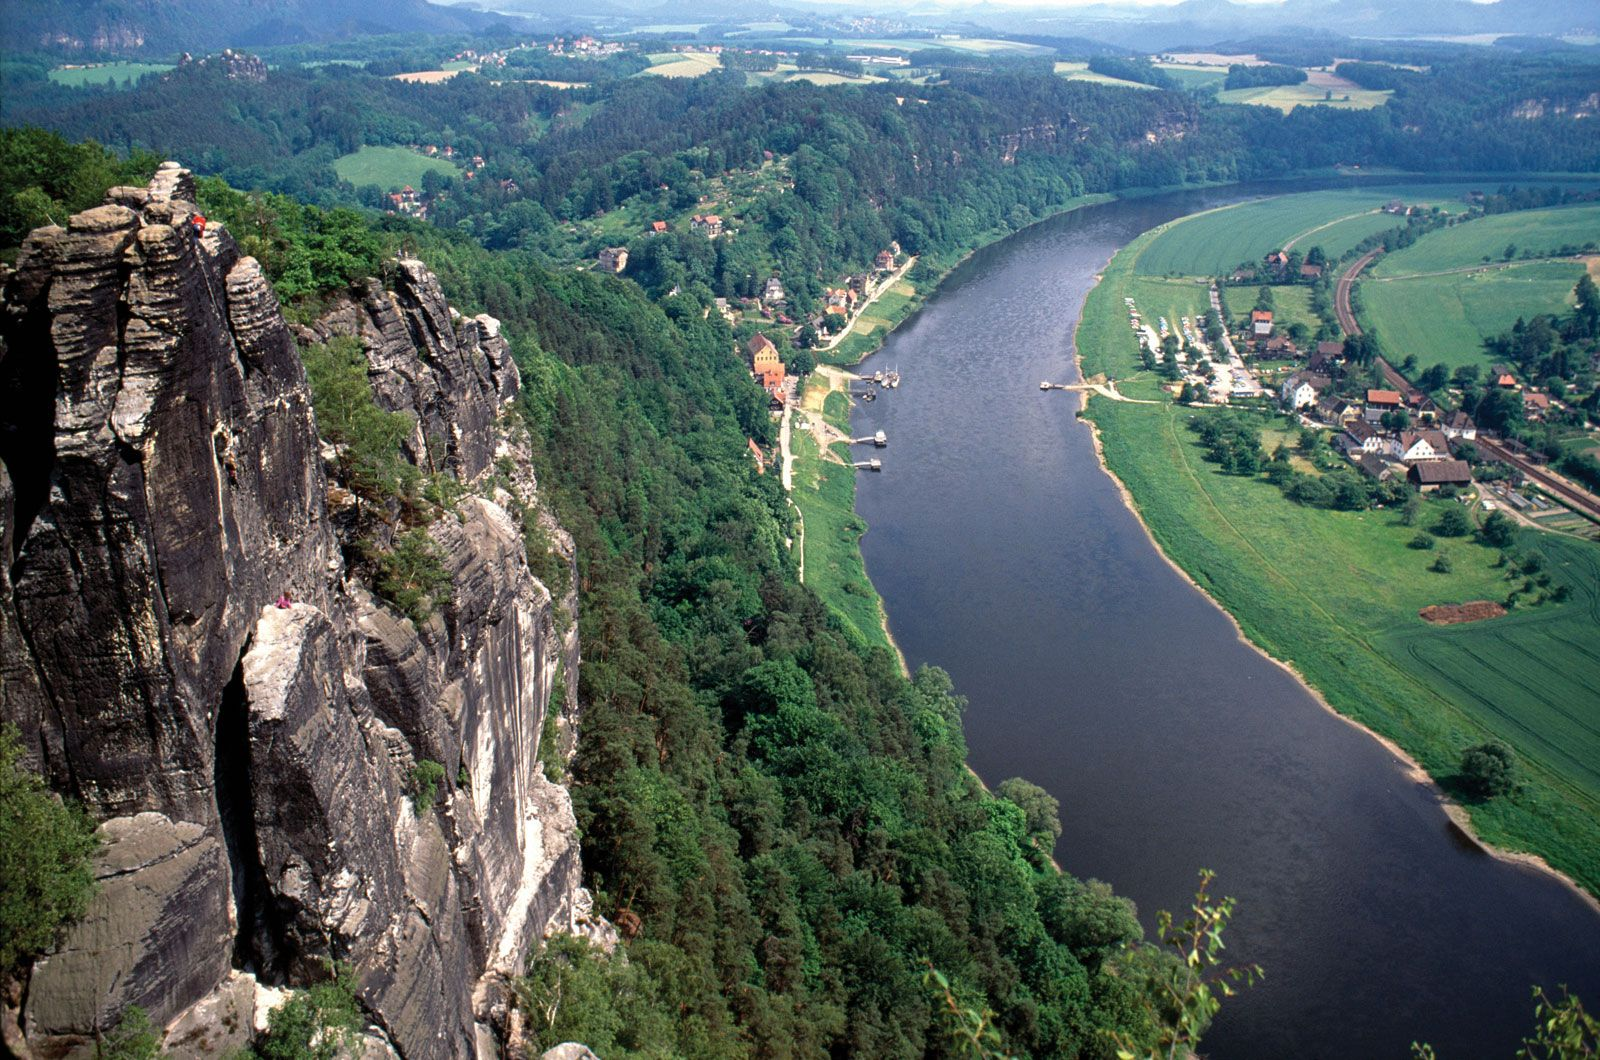 Elbe River In Germany Reasons We Love The Elbe River Cruise - Rivers in germany